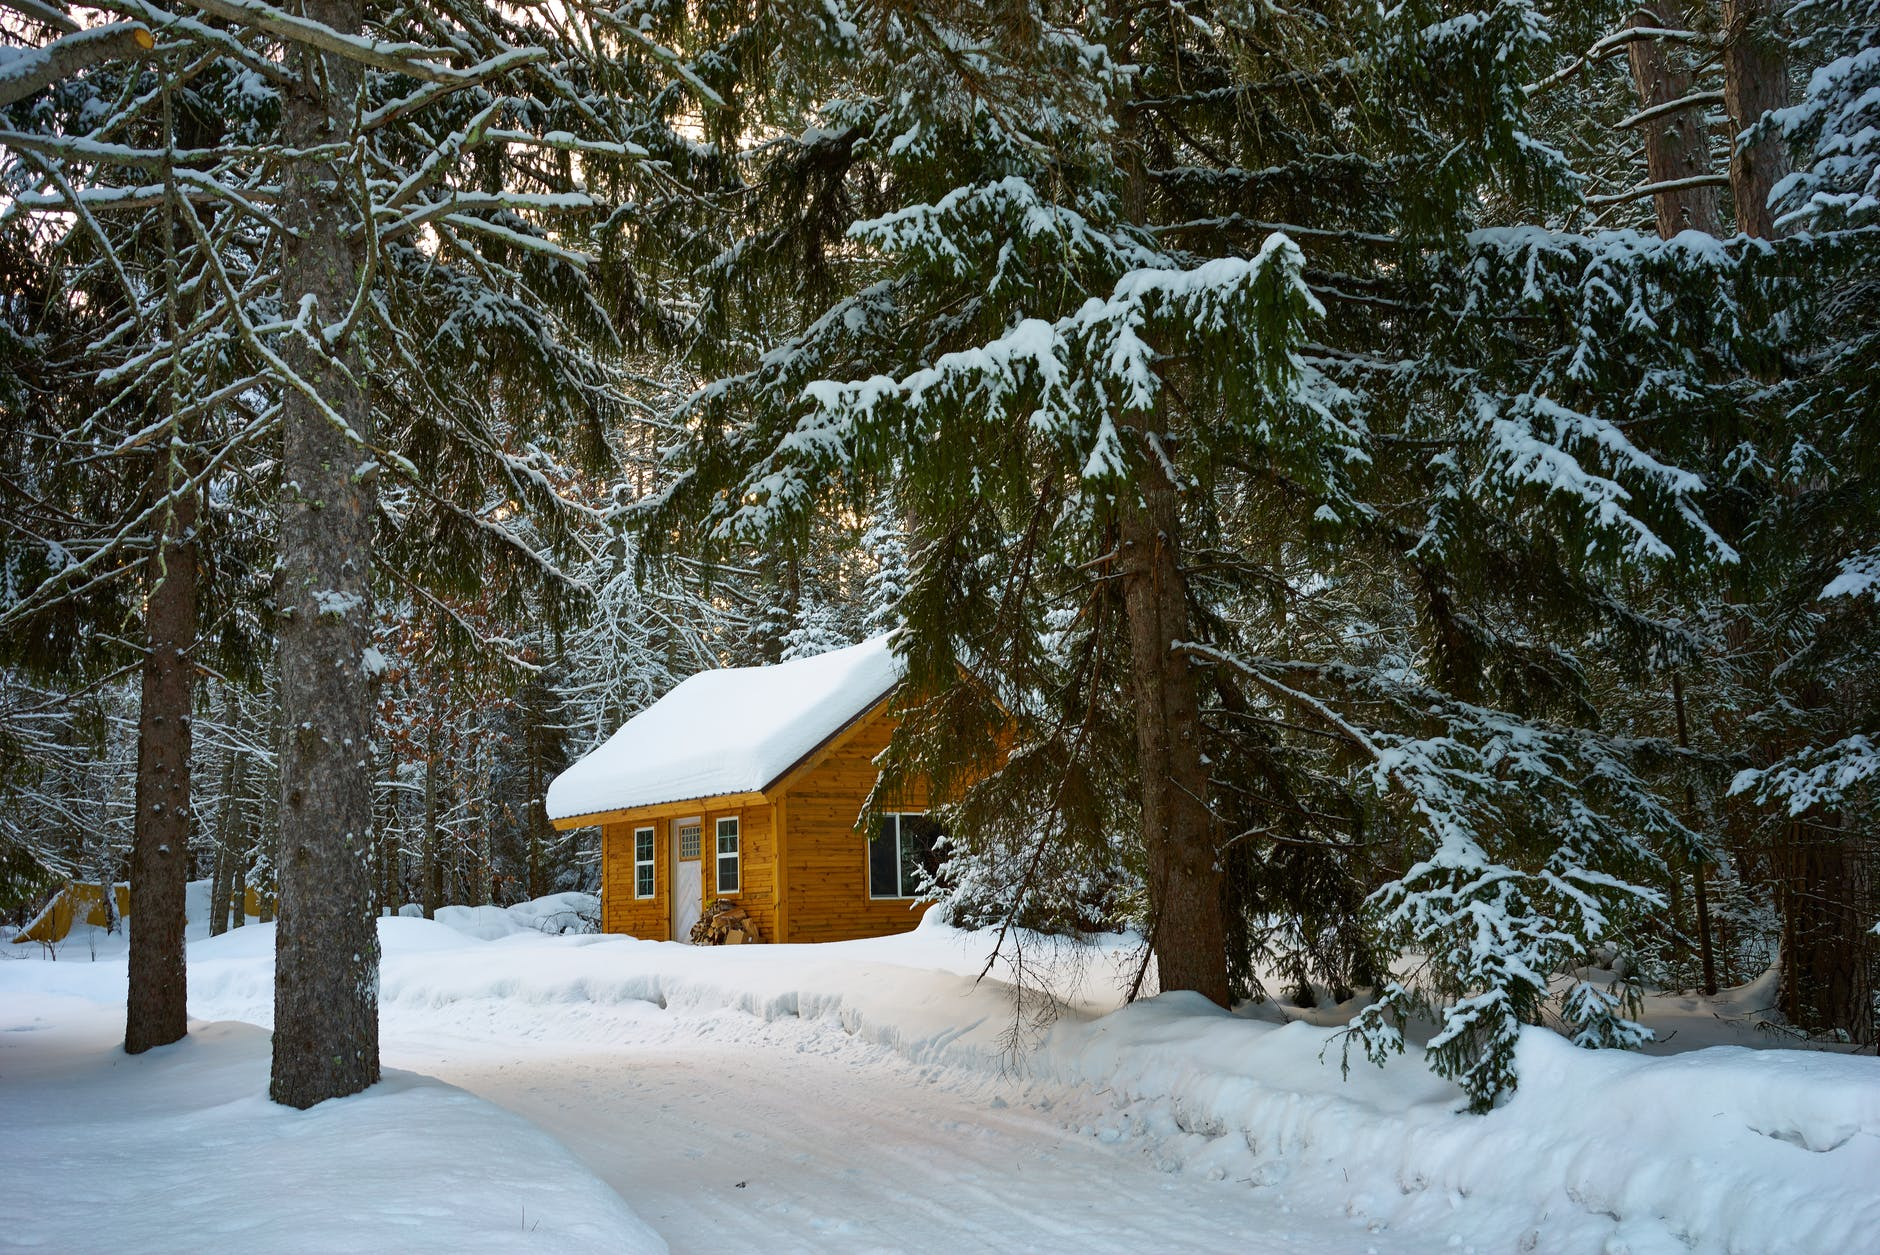 brown house near pine trees covered with snow